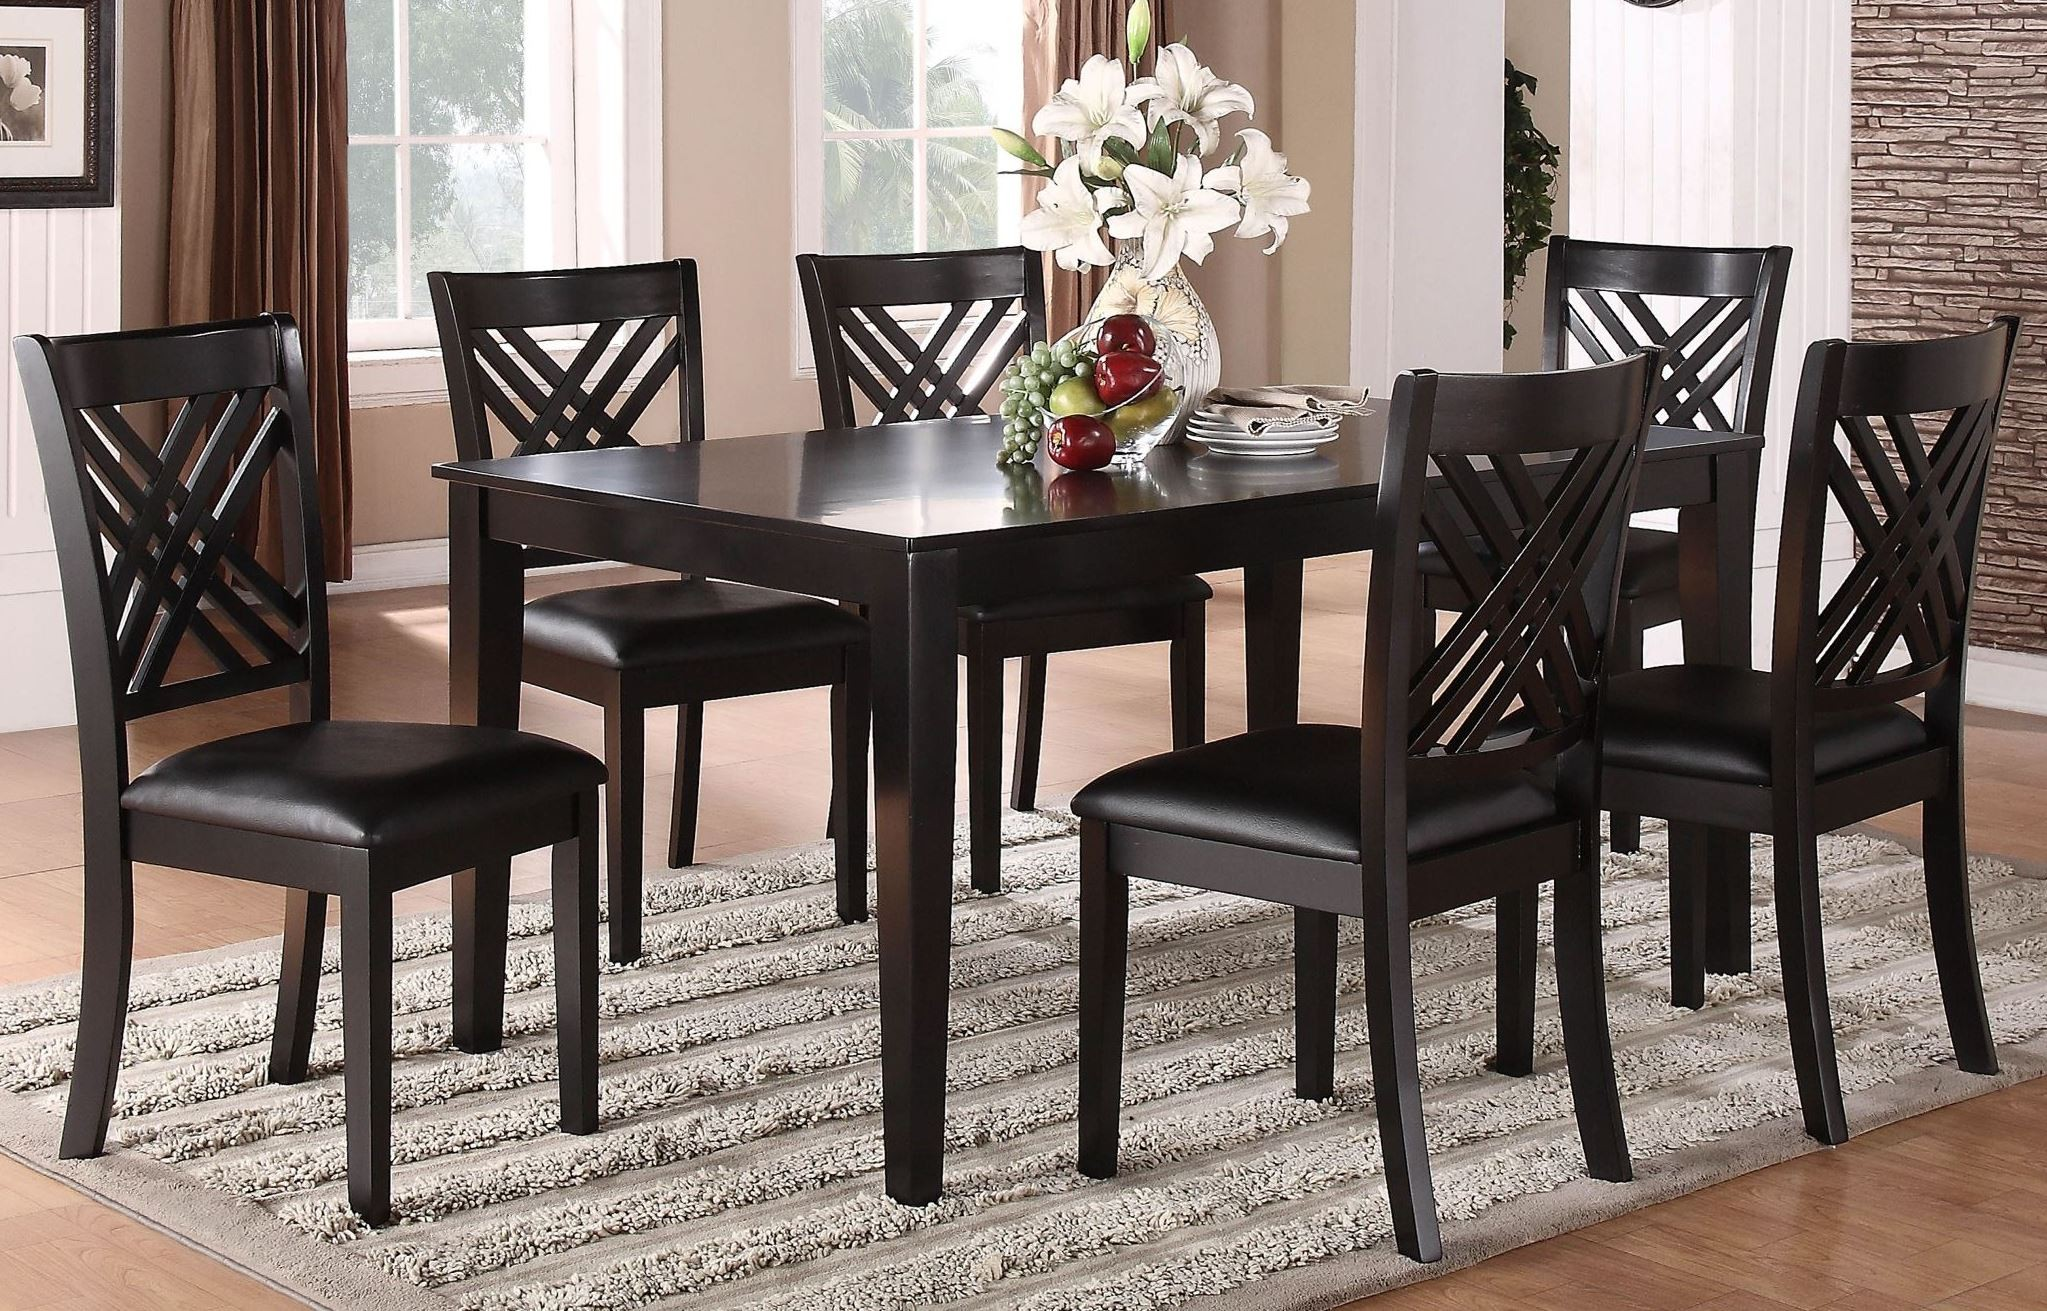 Brooklyn dark espresso 7 piece dining room set 18762 for 2 piece dining room set